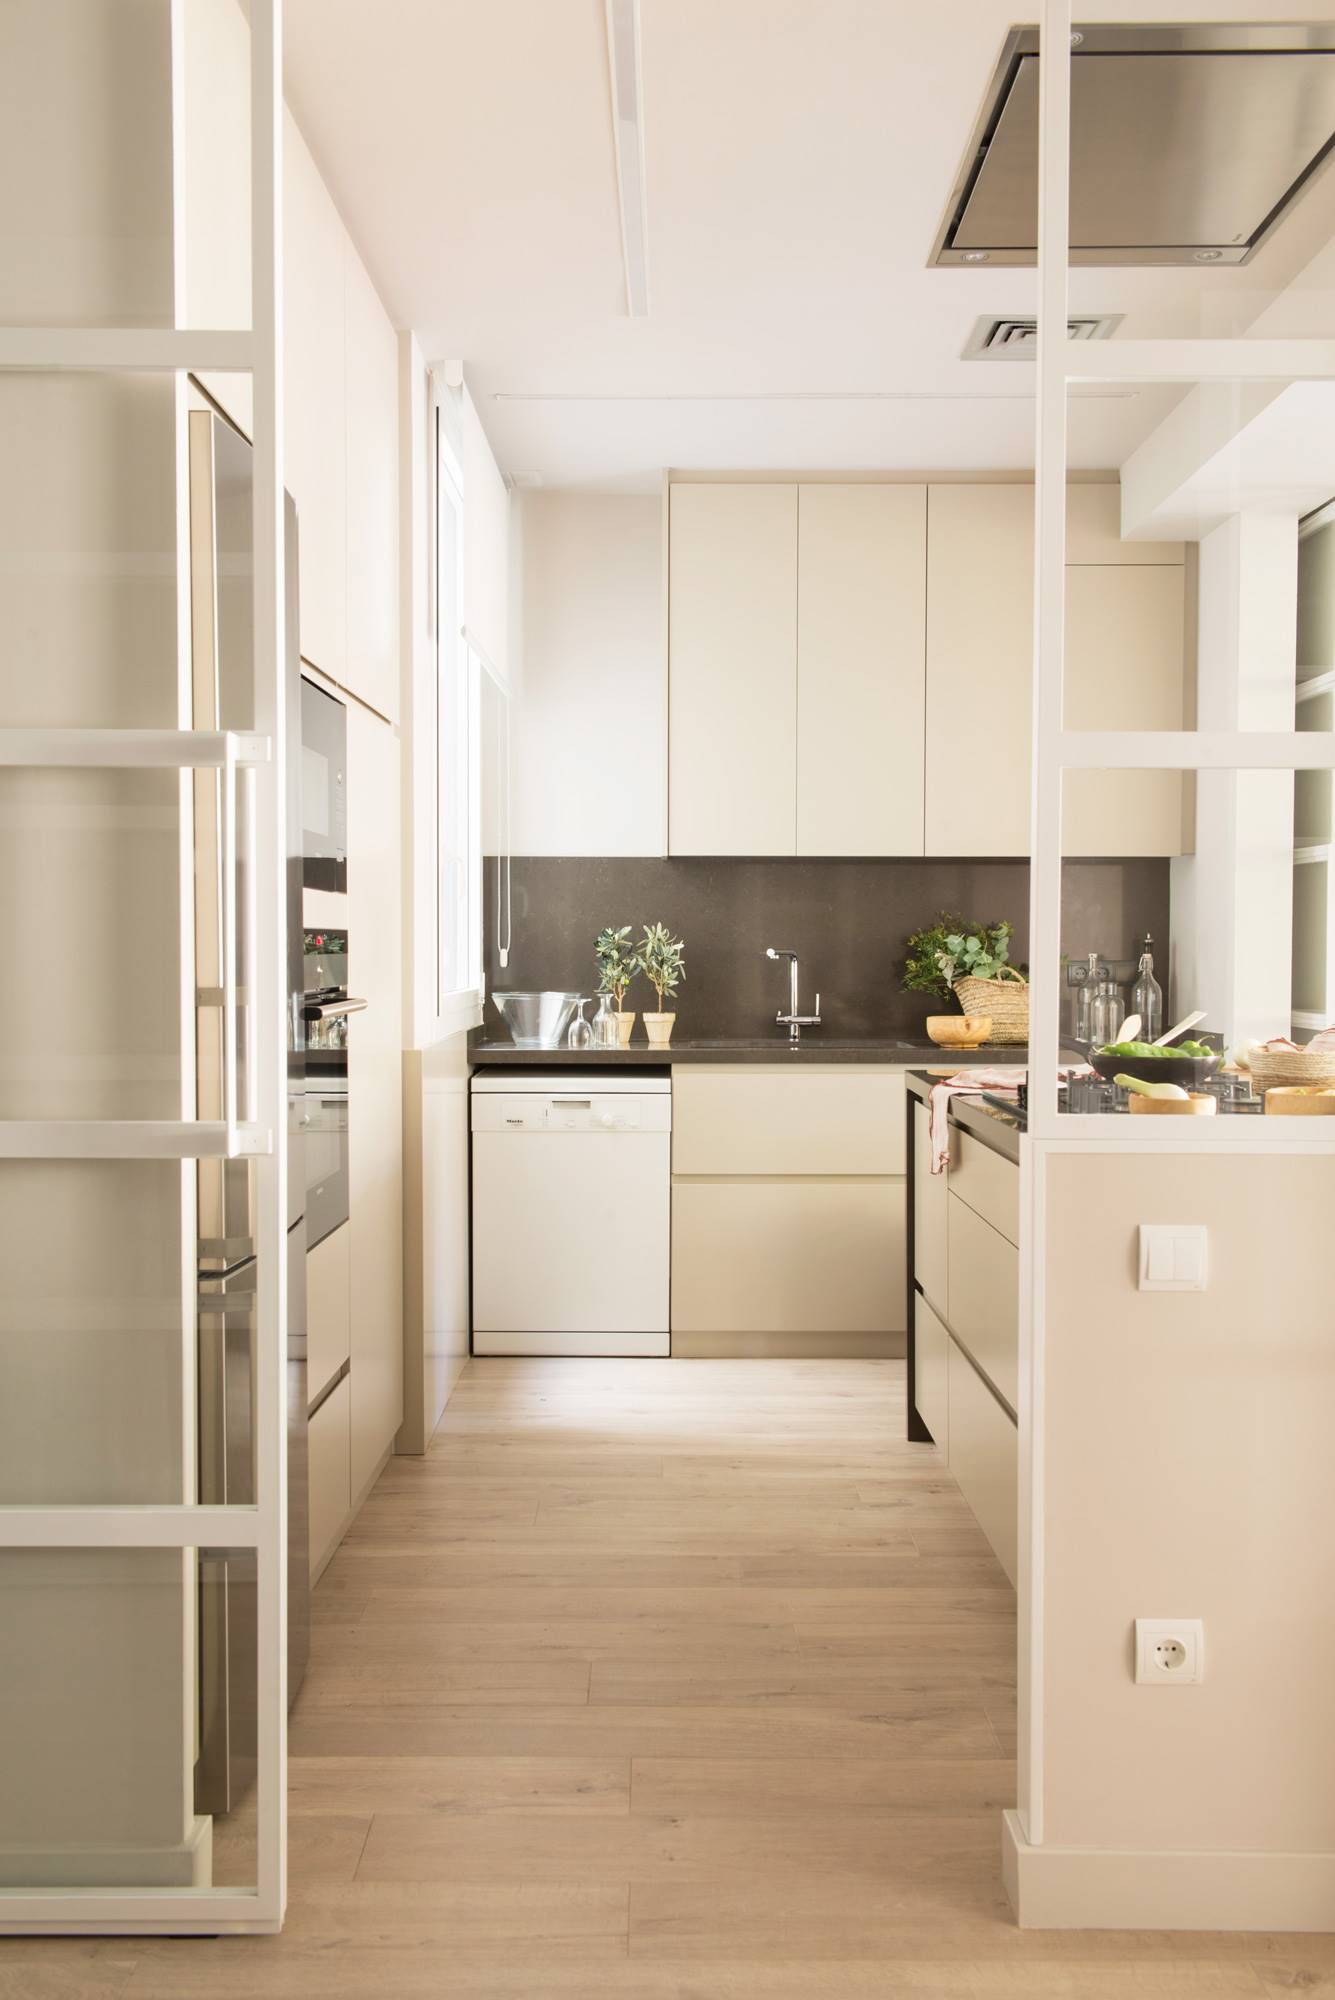 00491951 O. Advantages of installing parquet in the kitchen